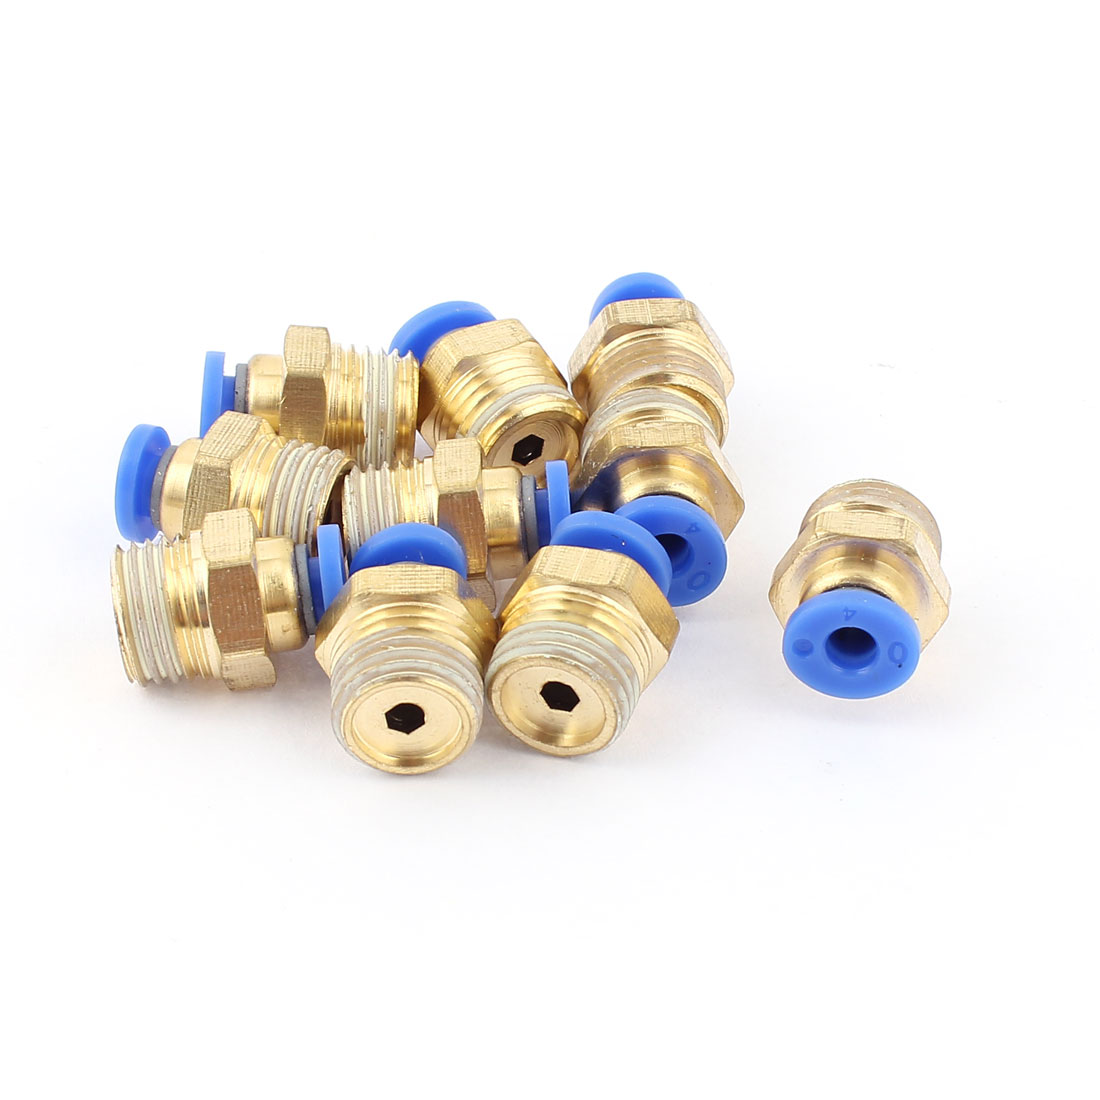 Air Line Hose 1/4BSP Male Thread 4mm Tube Quick Release Coupler Fittings 10pcs